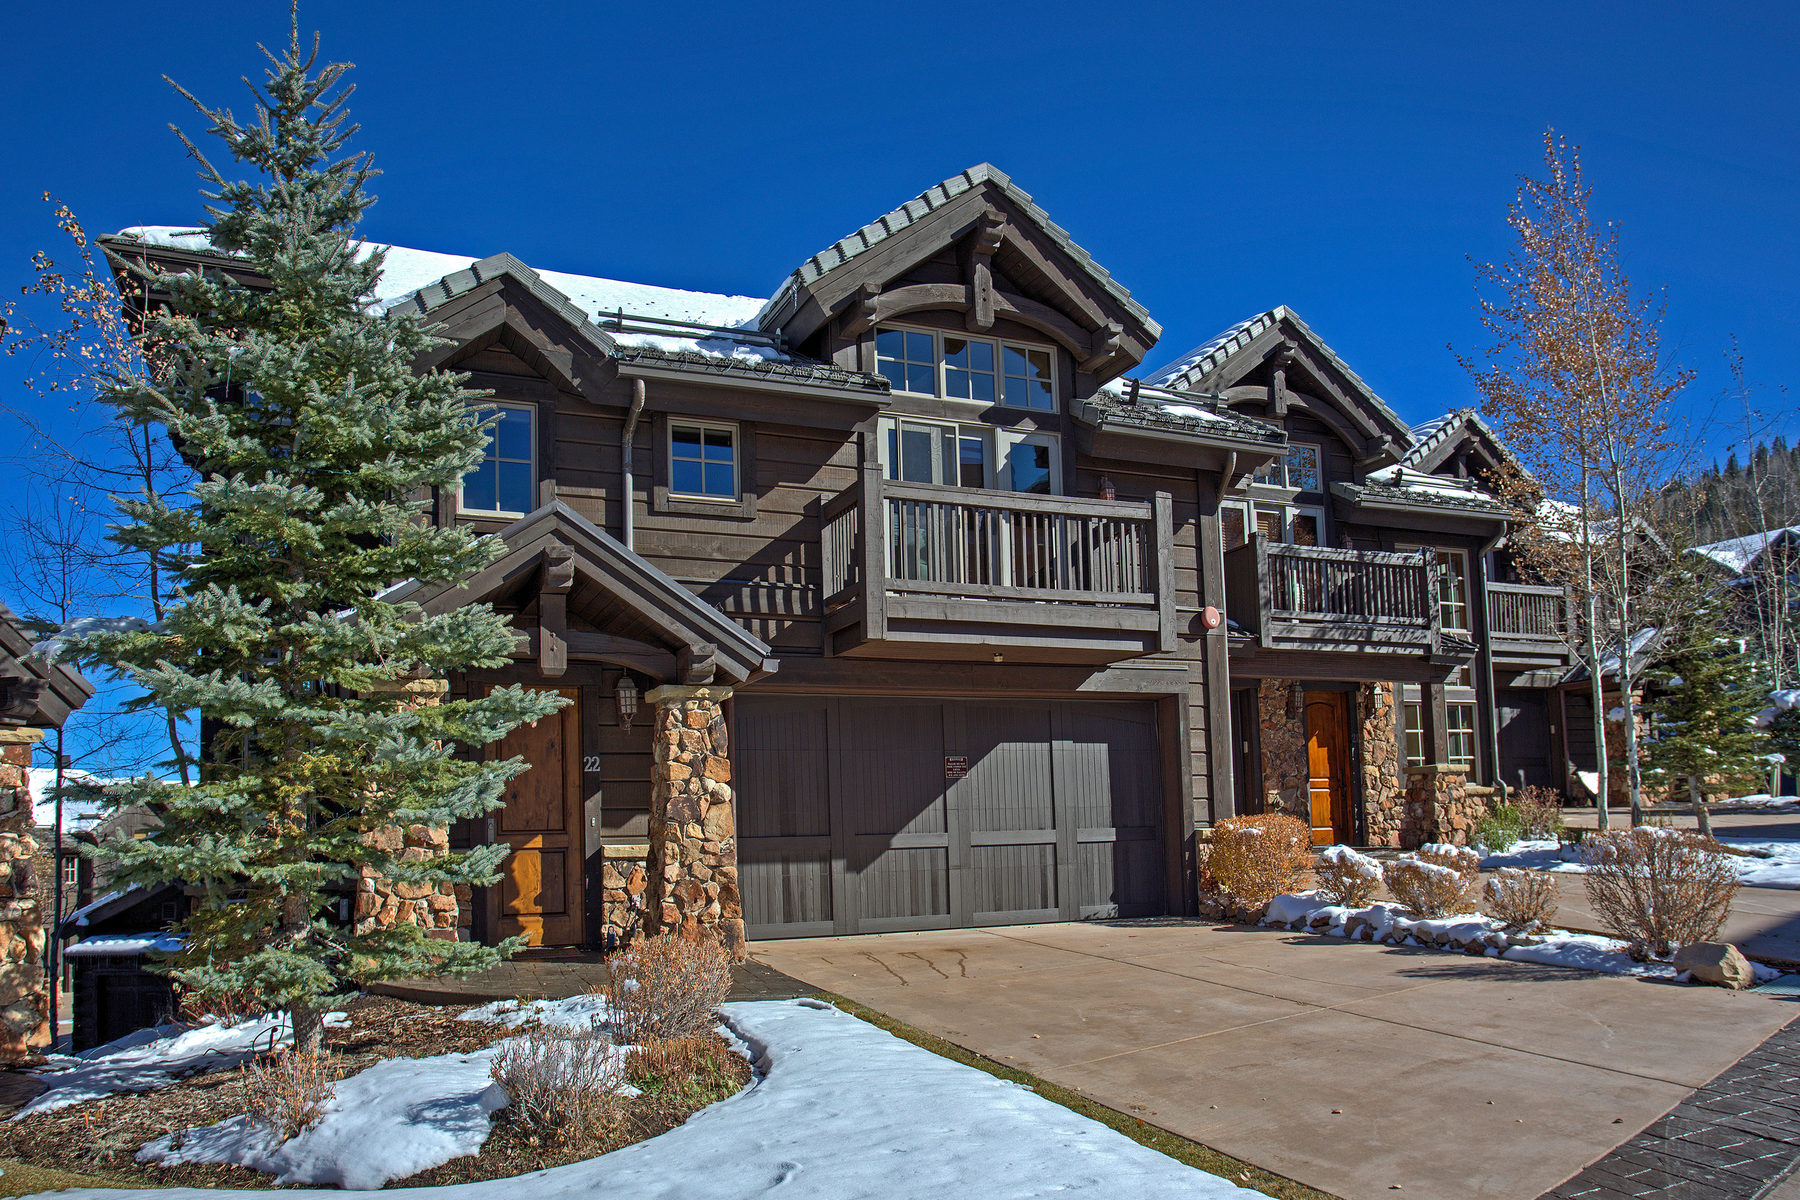 Townhouse for Sale at Timeless Elegant Ski In Ski out at Ironwood Deer Valley 8789 Marsac Ave #22 Park City, Utah 84060 United States